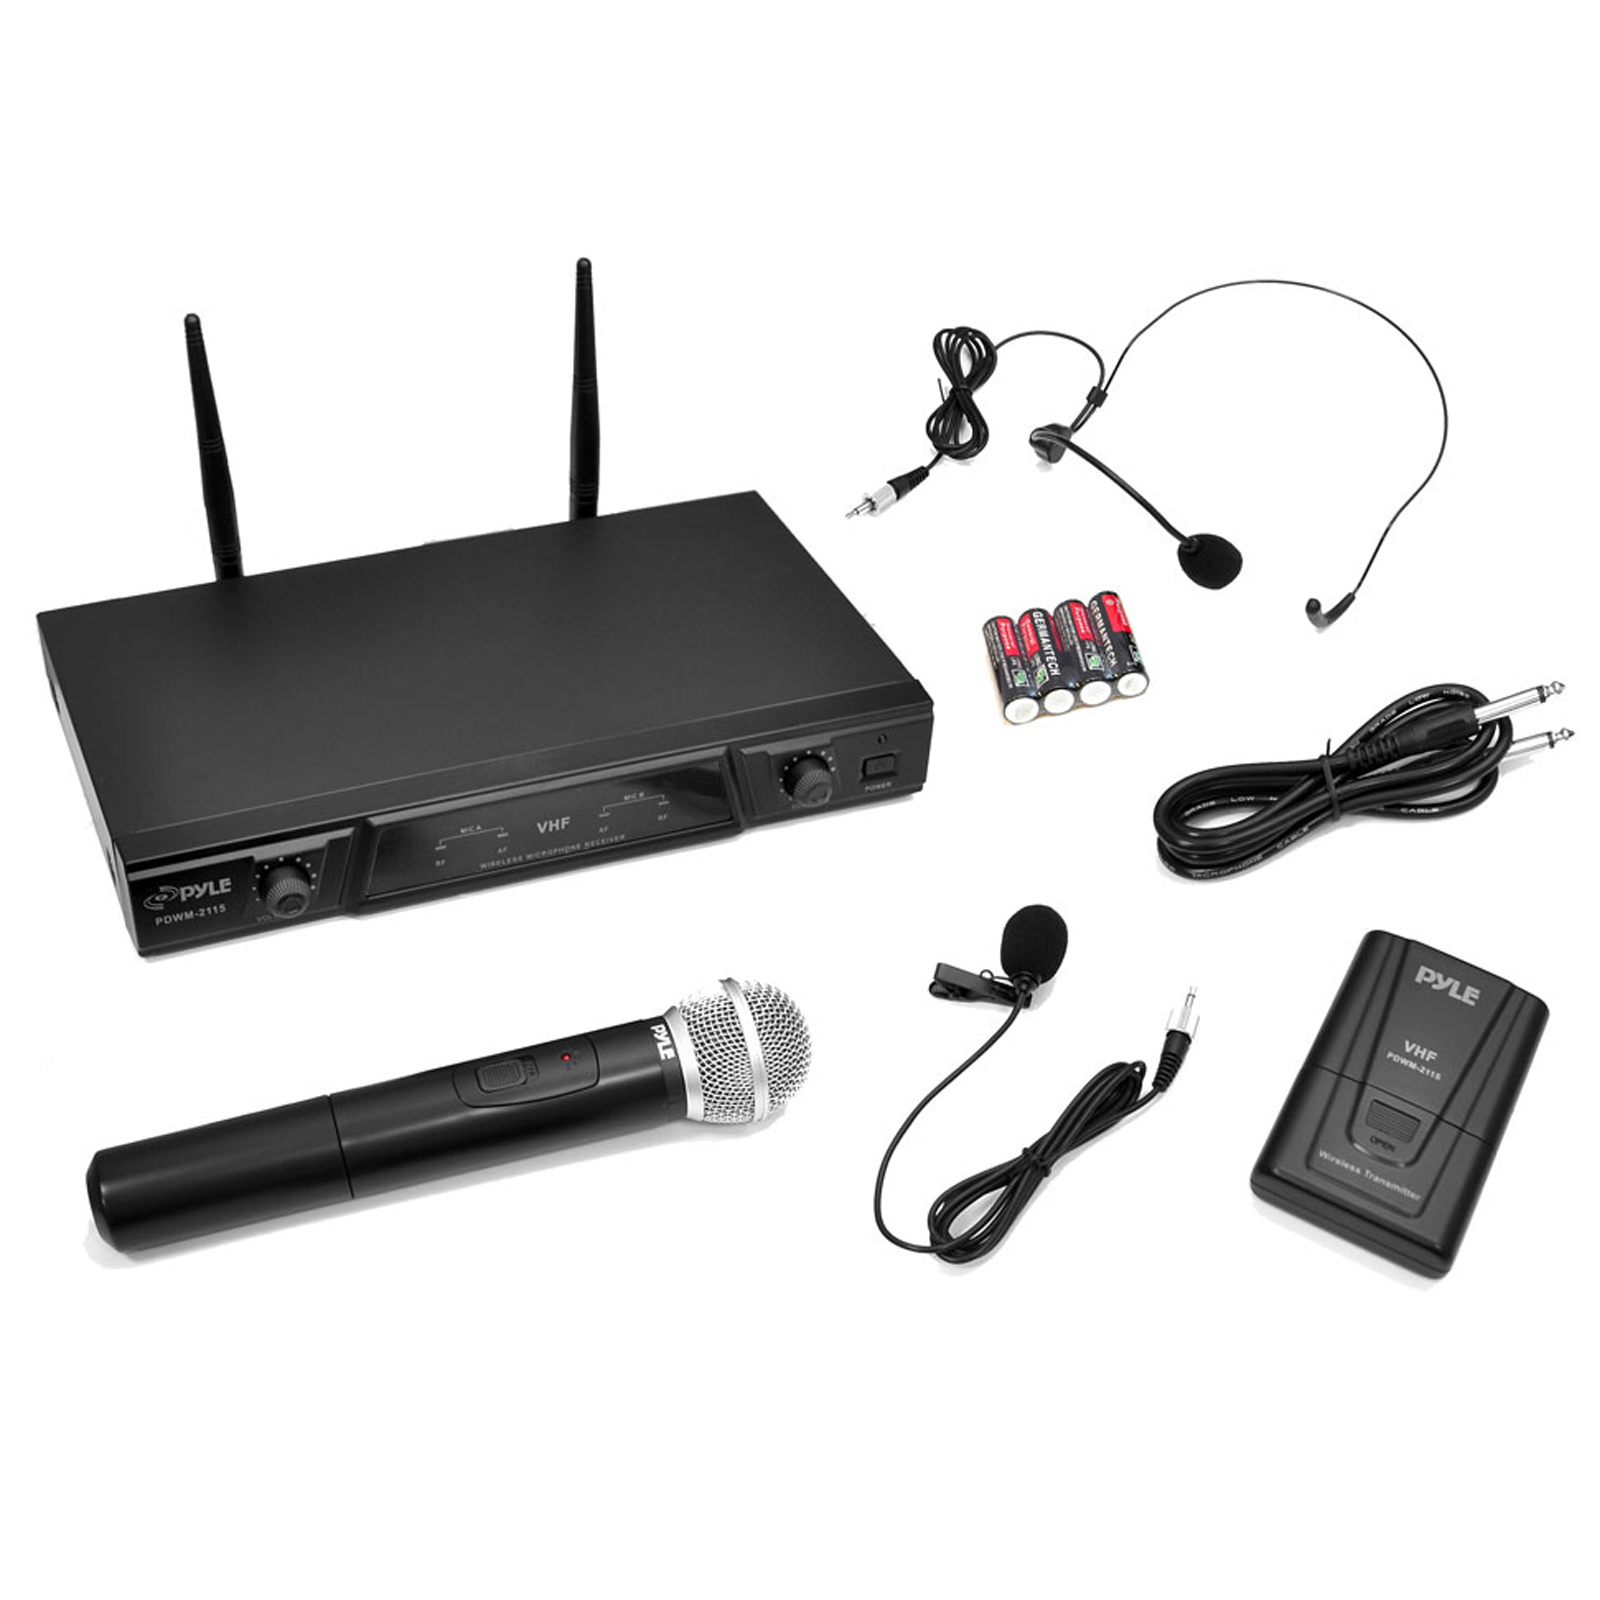 Pyle-Pro VHF Wireless Microphone Receiver System with Independent Volume Control, Handheld Microphone and Belt Pack Transmitter with Lavalier Microphone